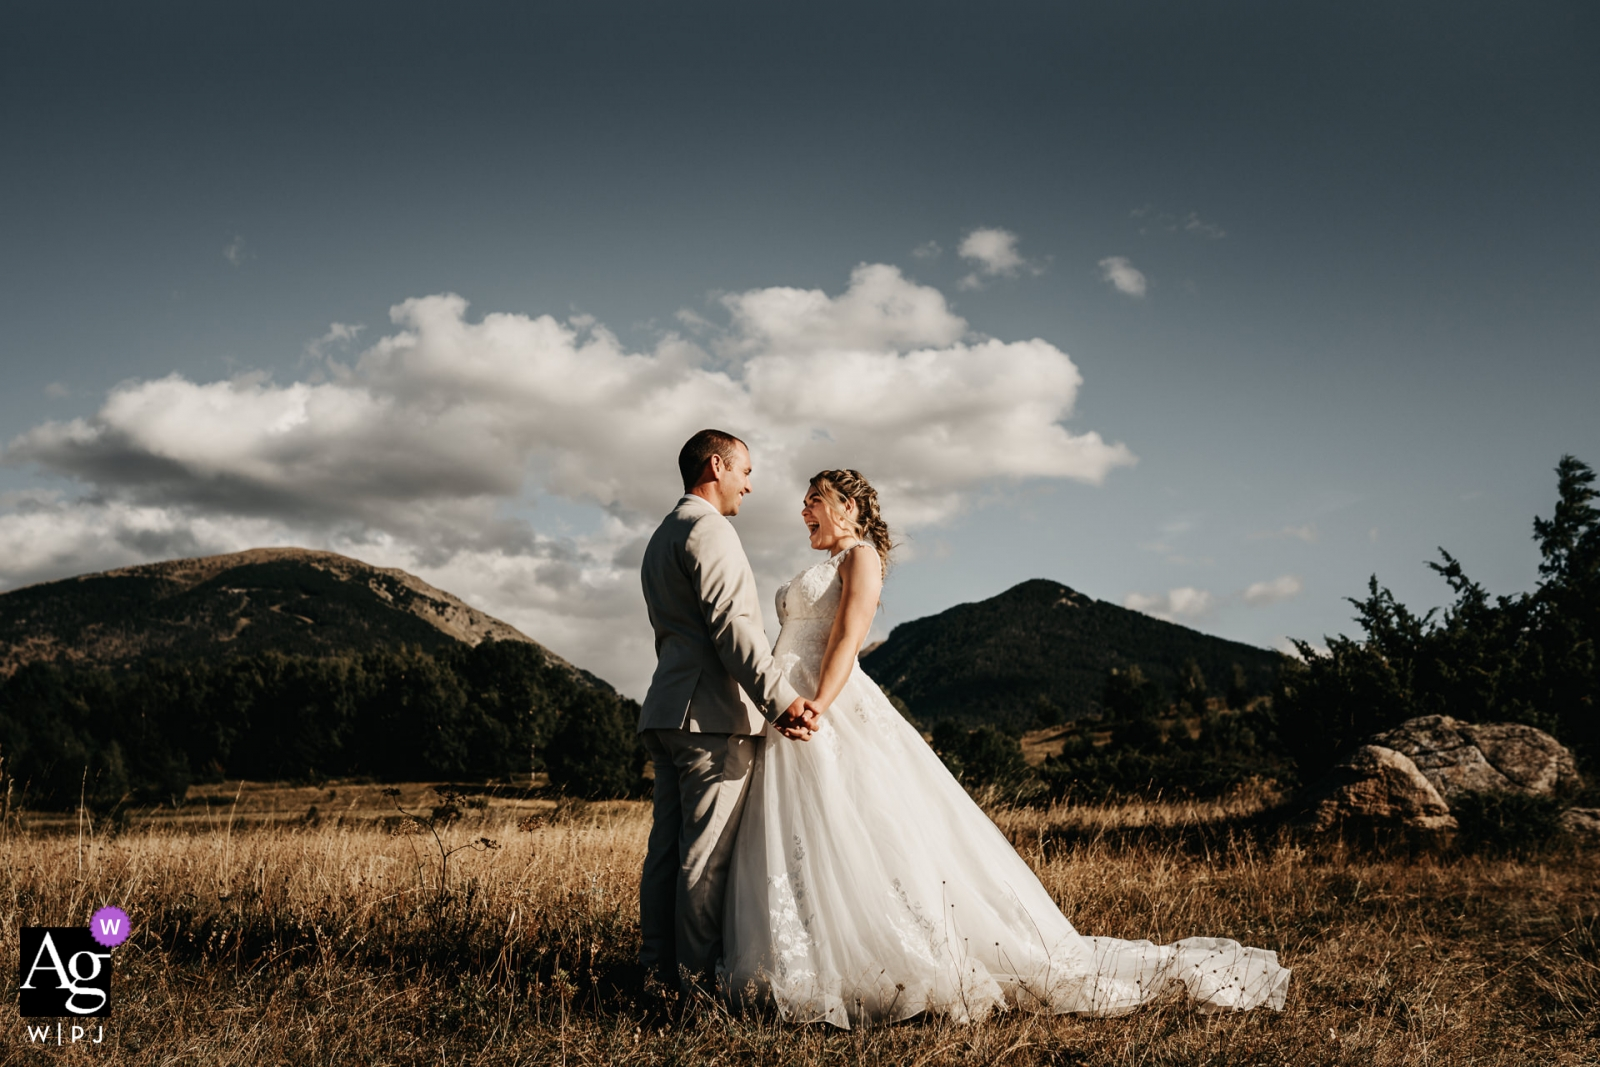 Ceremony location, Eyne - Couple portrait in front of their favorite mountain